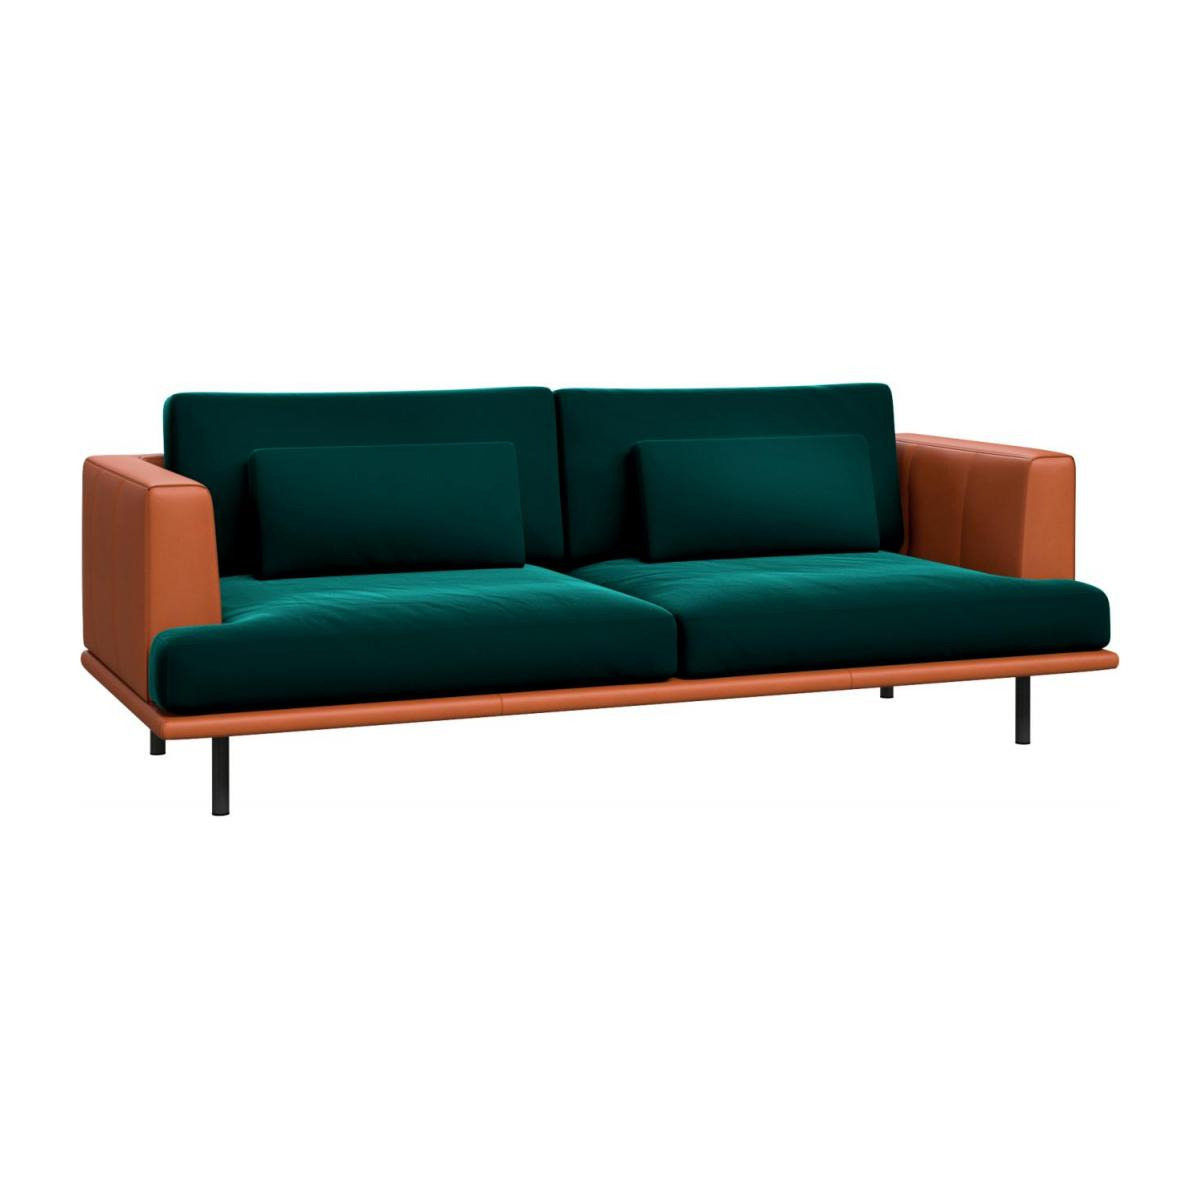 3 seater sofa in Super Velvet fabric, petrol blue with base and armrests in brown leather n°1